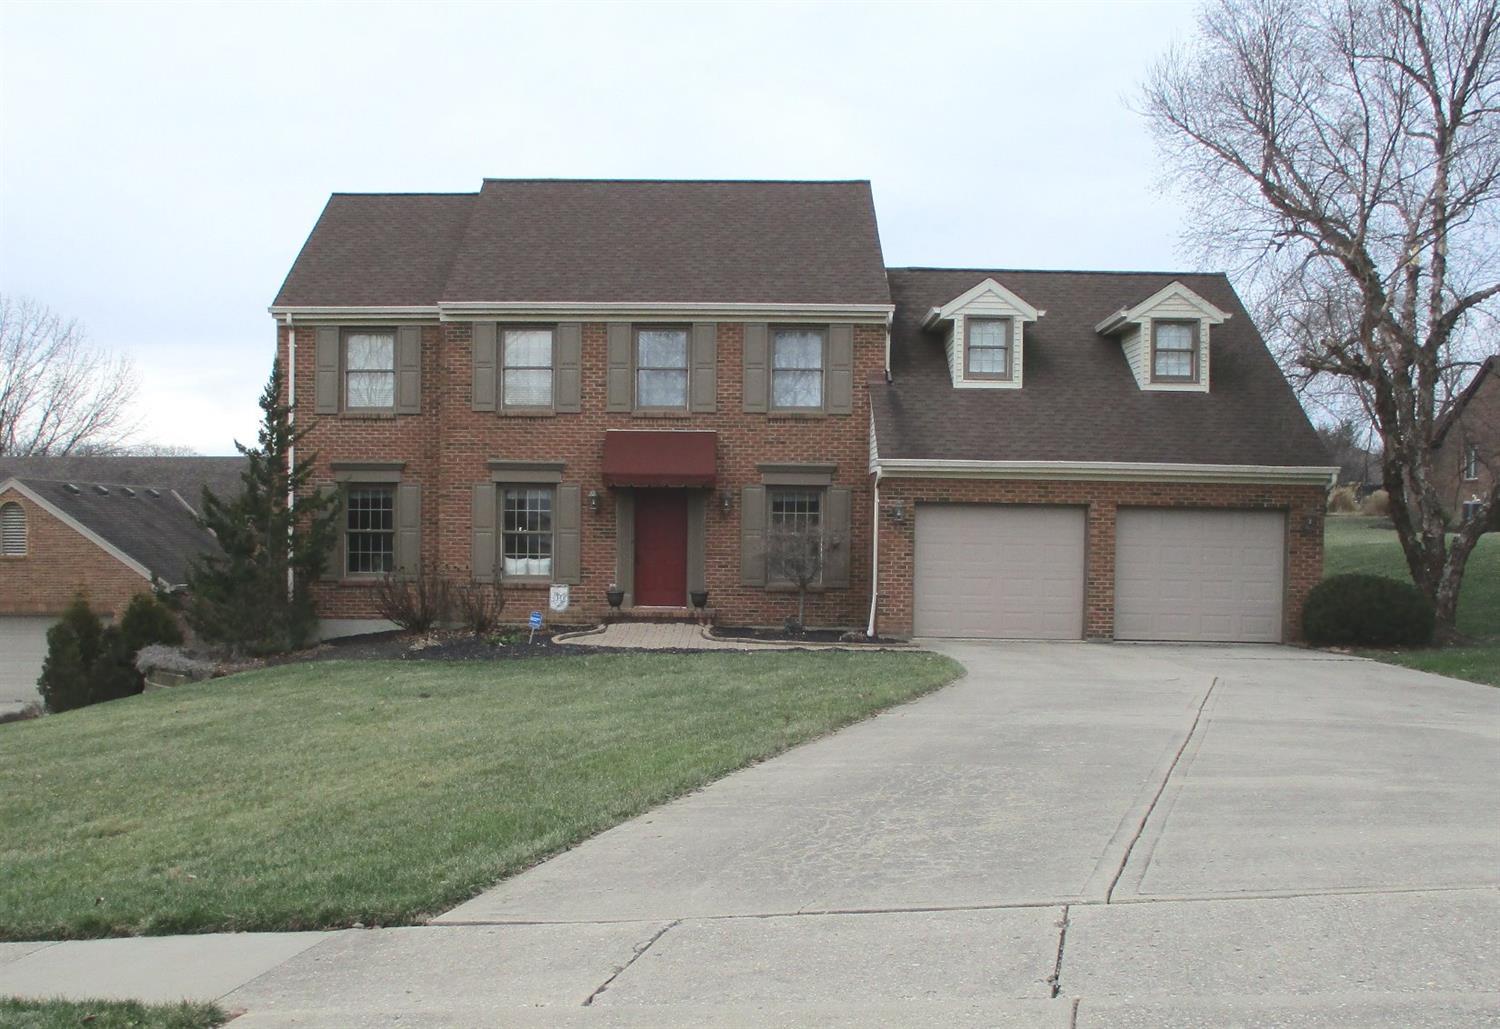 2657 Gallia Dr Miami Twp. (West), OH